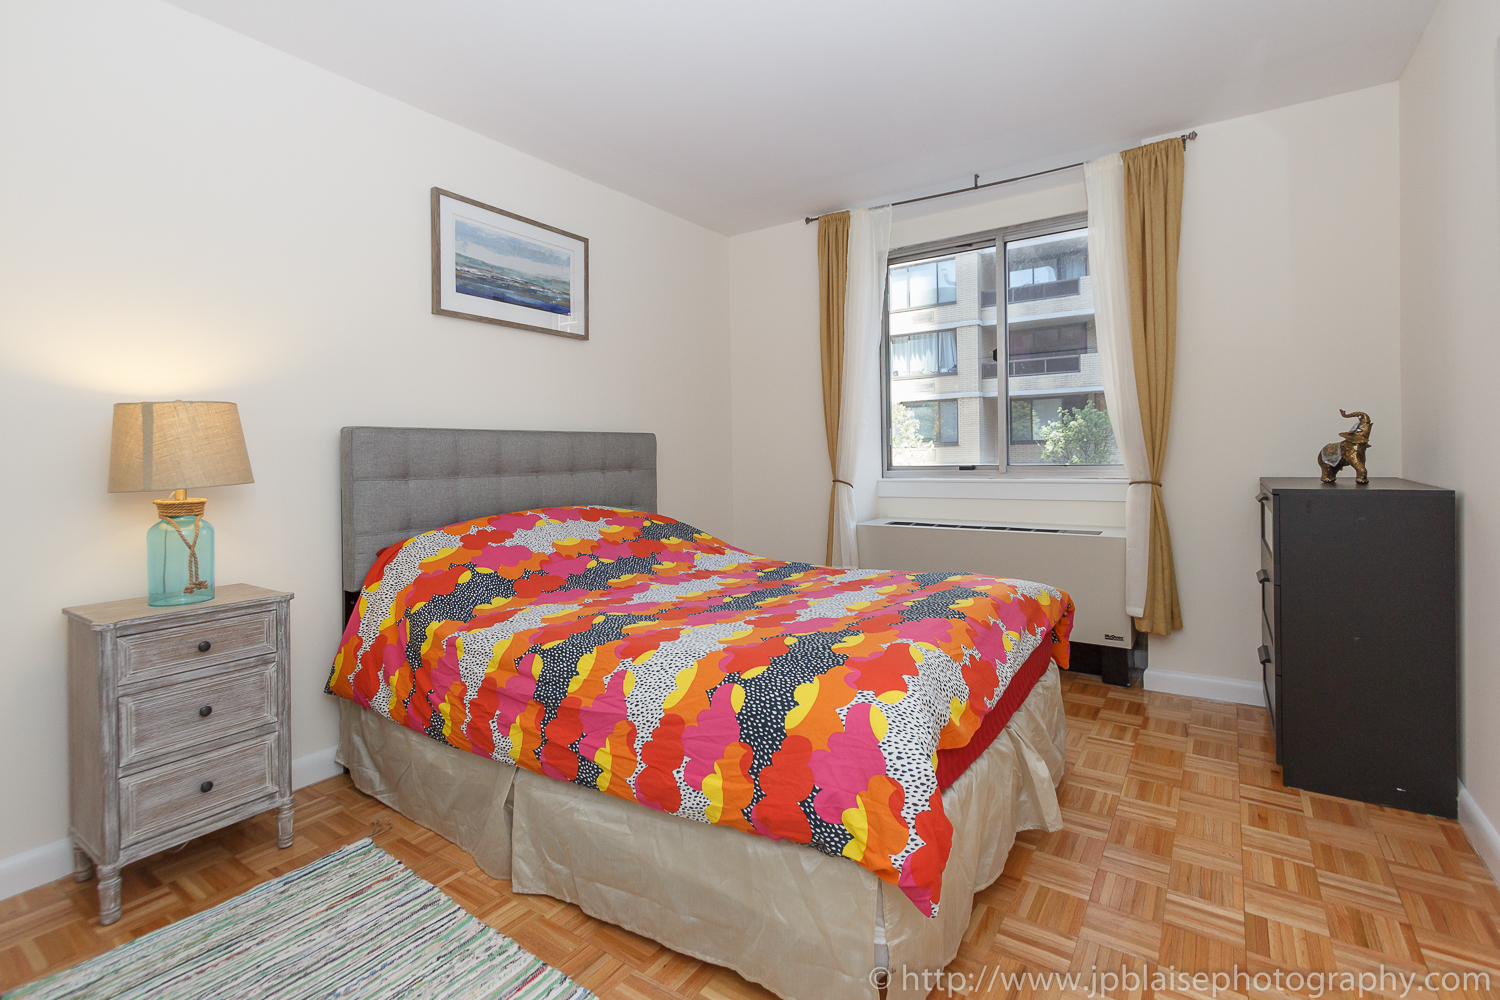 Latest NYC Real Estate photographer work two bedroom two bathroom in Midtown East, Manhattan - picture of master bedroom